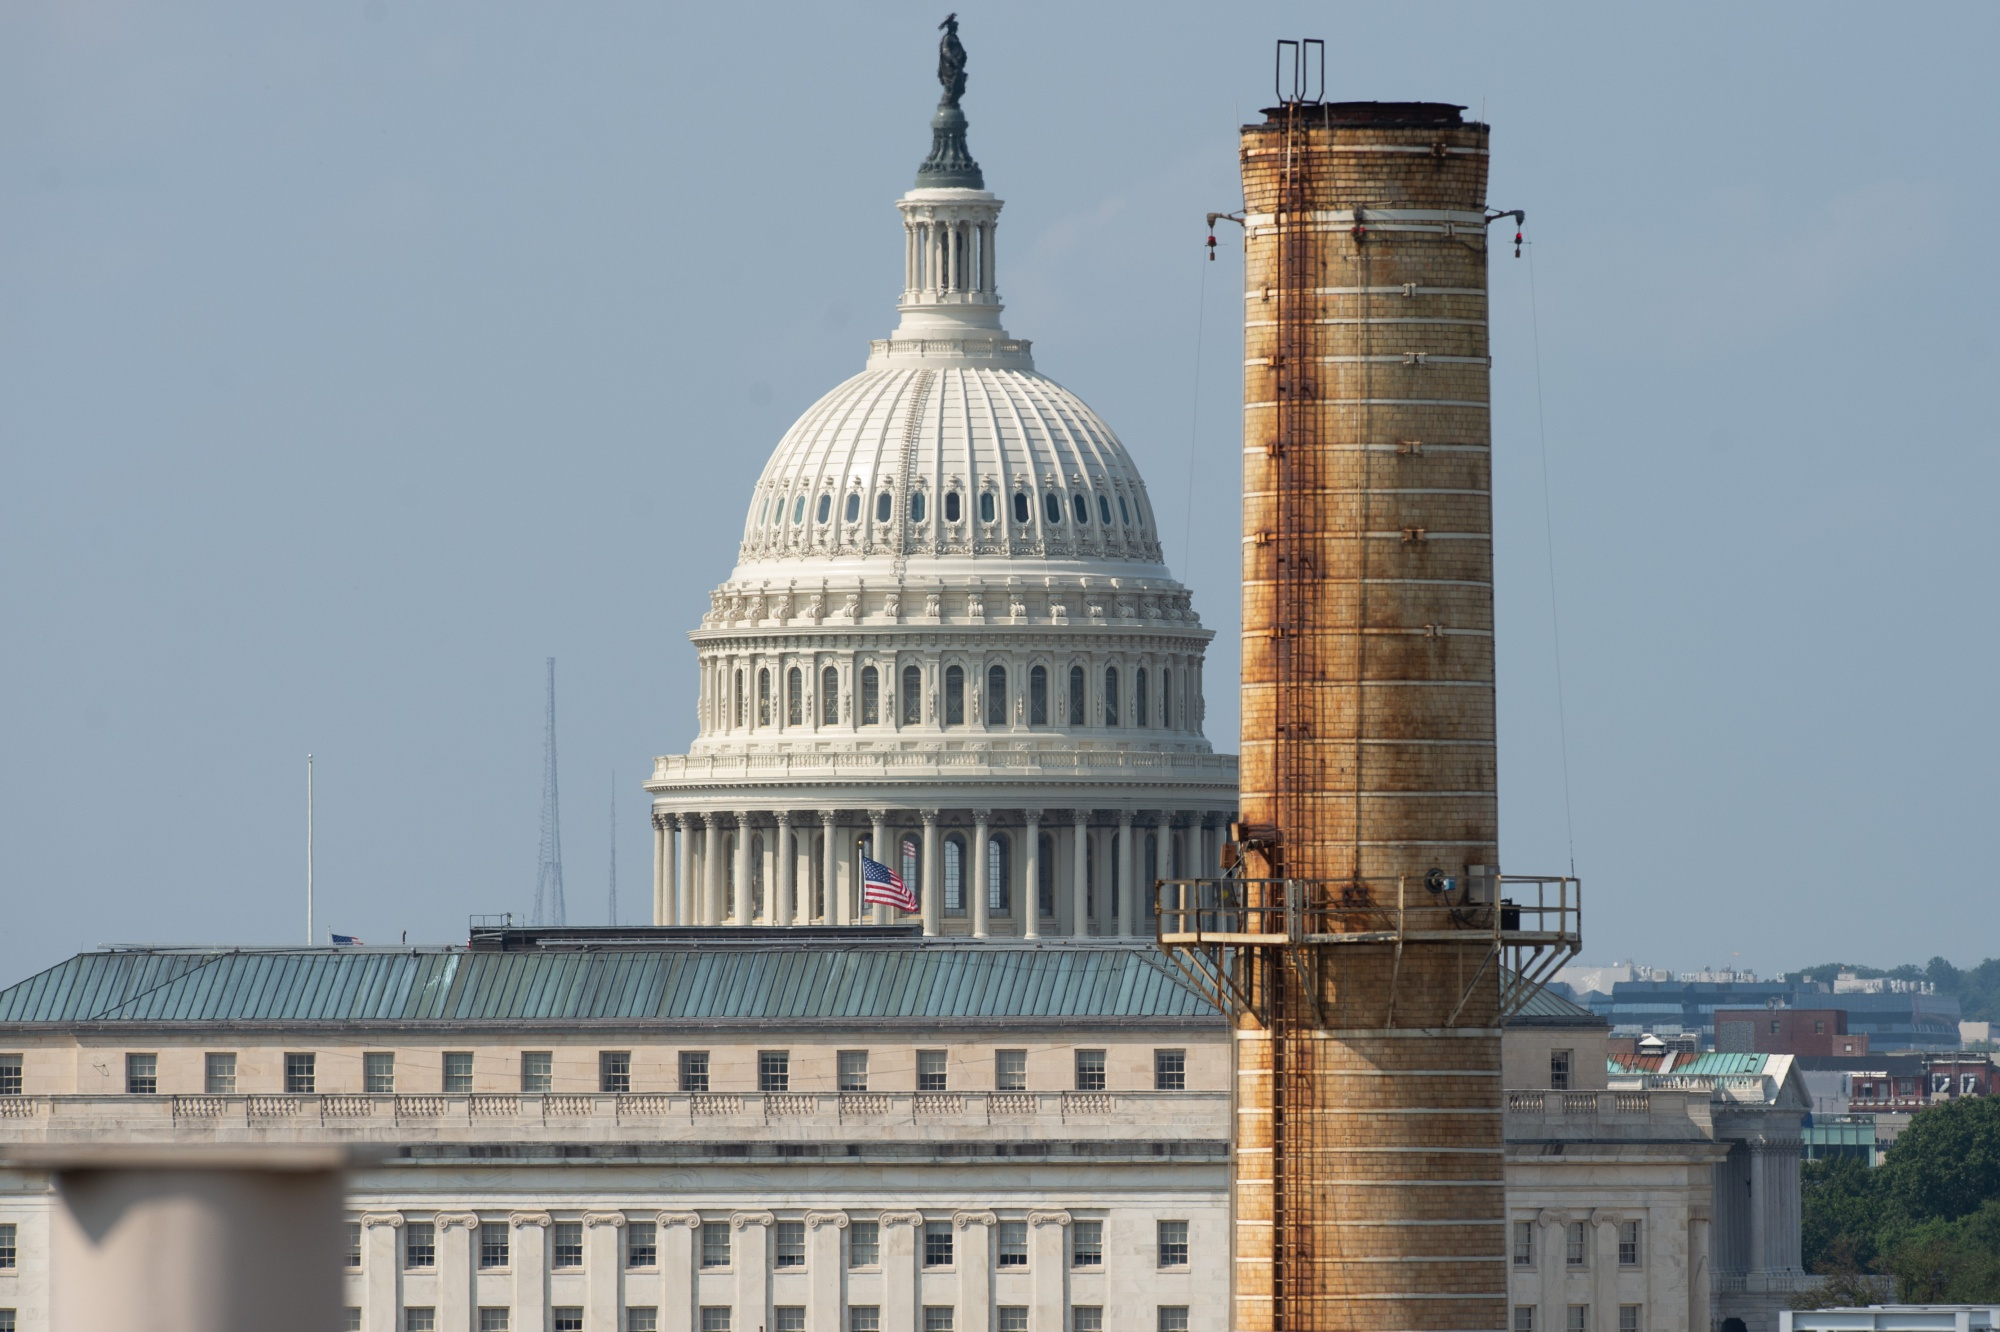 The chimney stacks of a natural gas and coal burning power plant that provides steam and chilled water for heating and cooling of the US Capitol and surrounding buildings